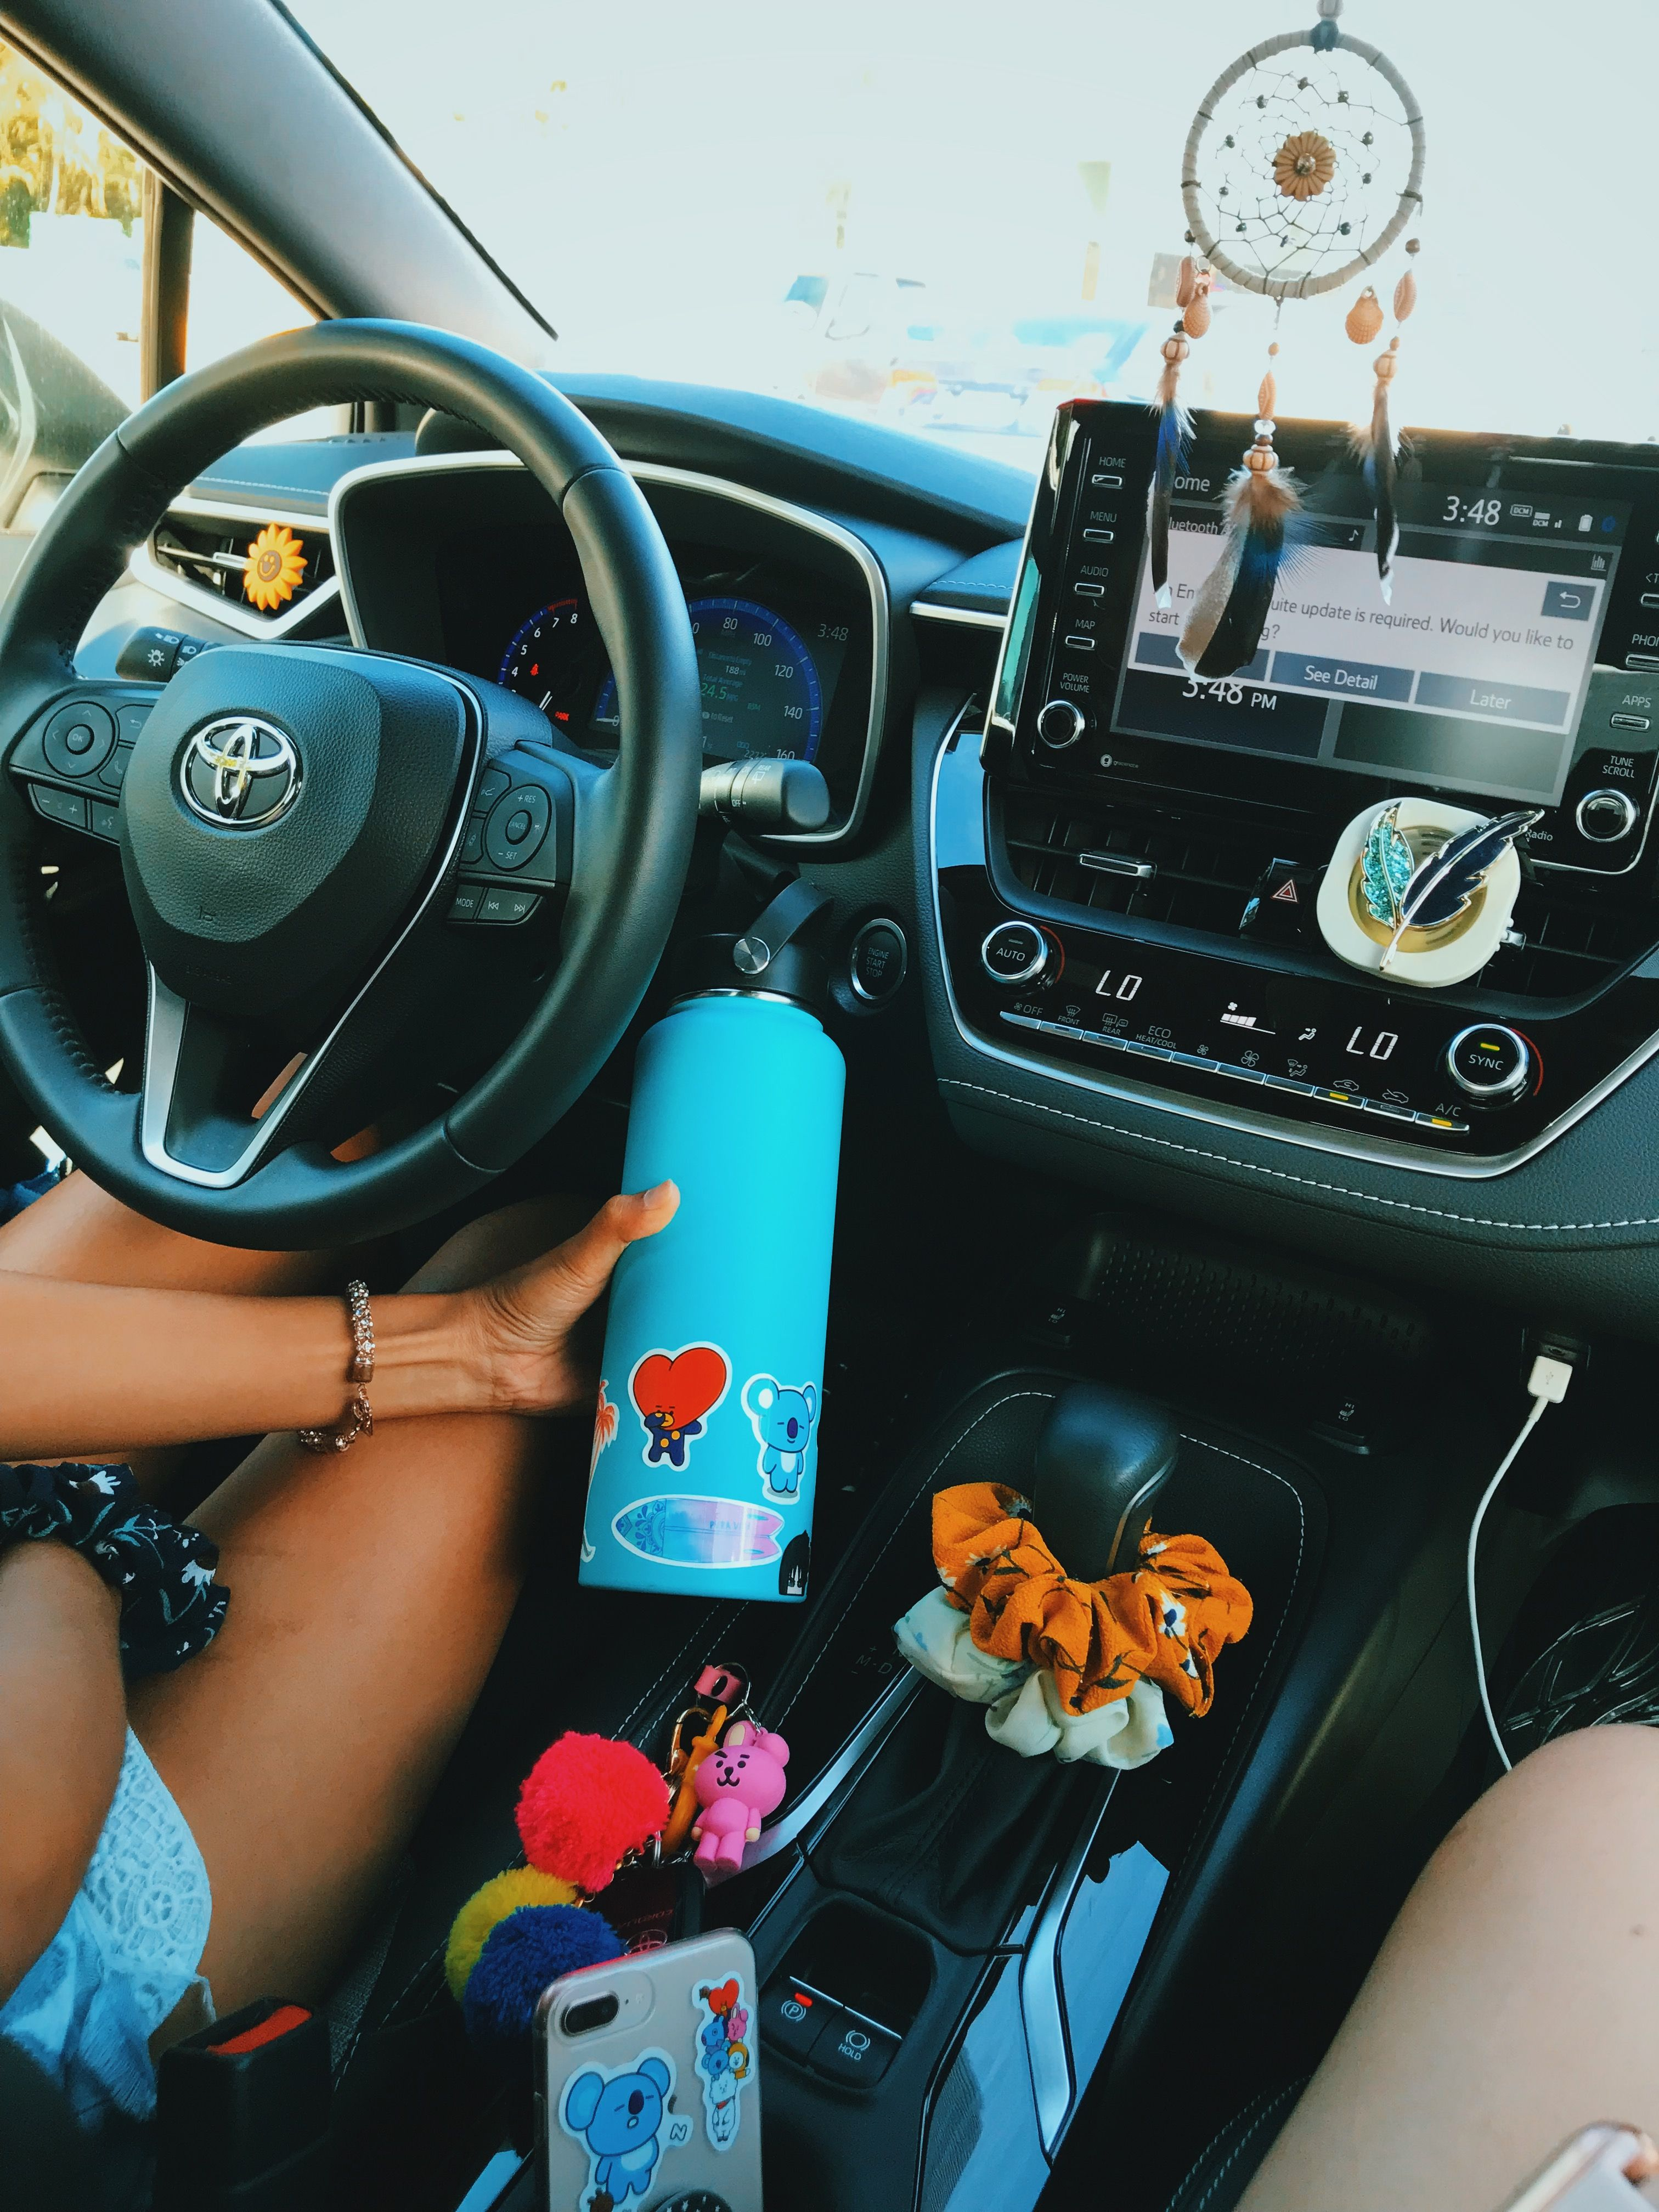 Pin By Carra Mitchell On Yes In 2020 Inside Car Girly Car Car Accesories